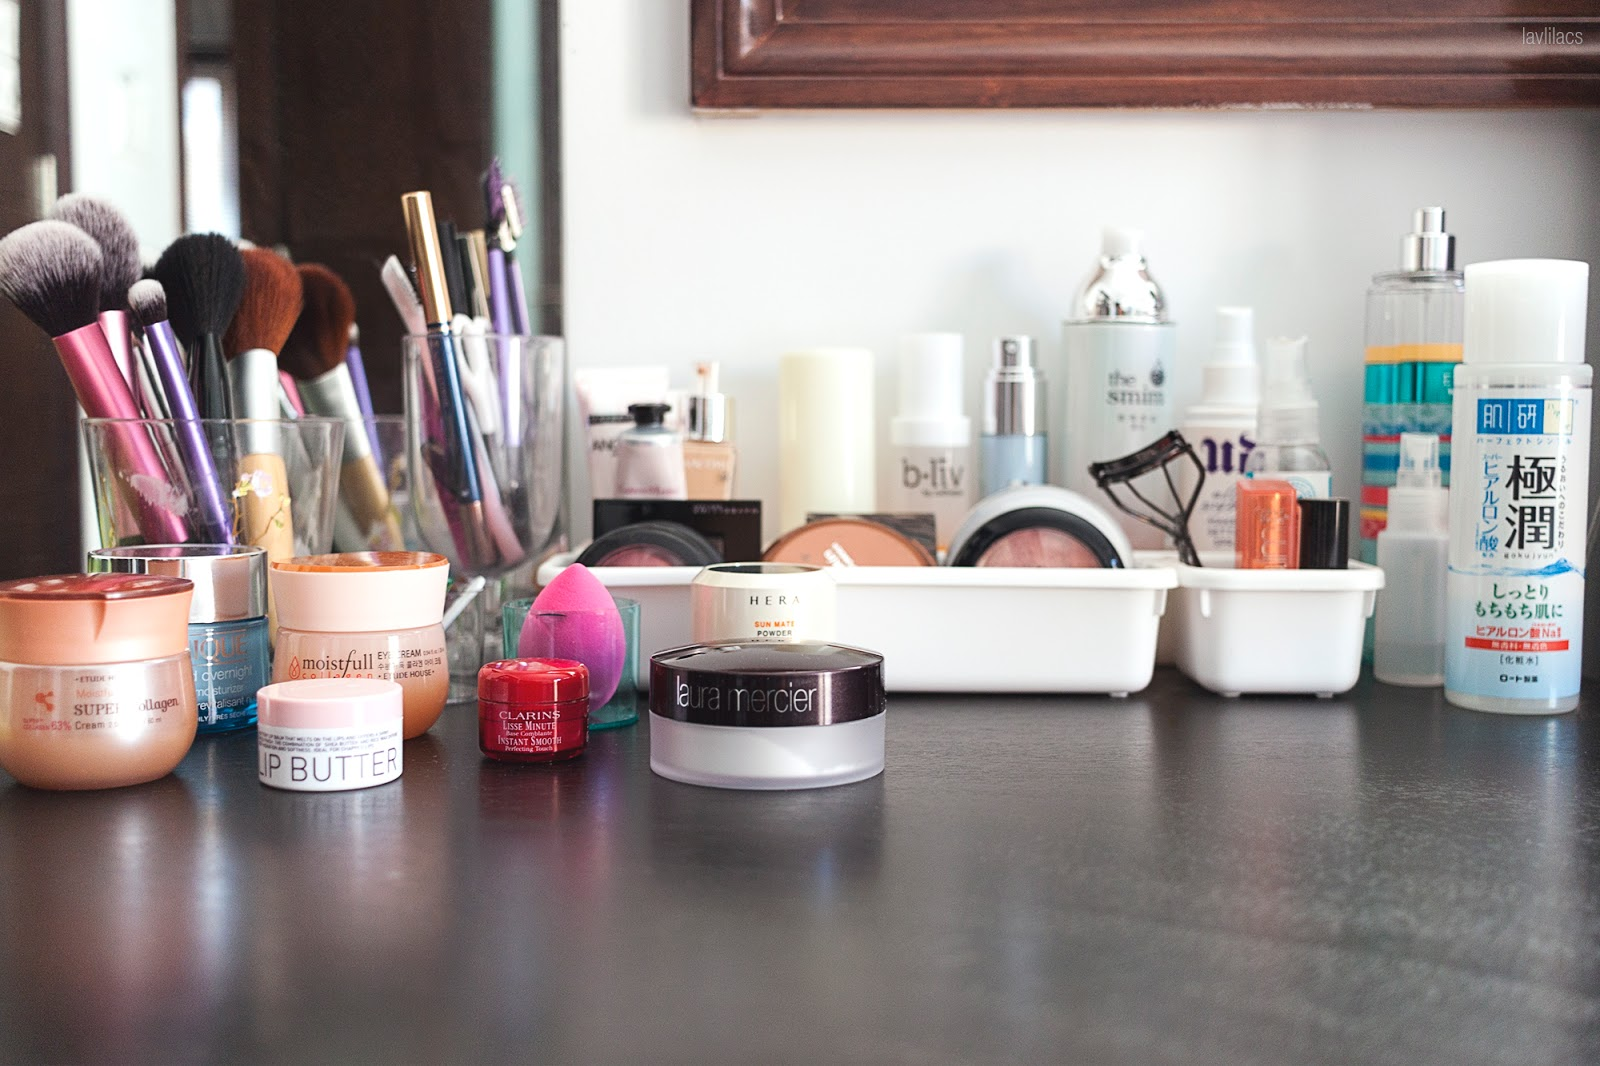 Daily makeup skincare products on top of bedside table